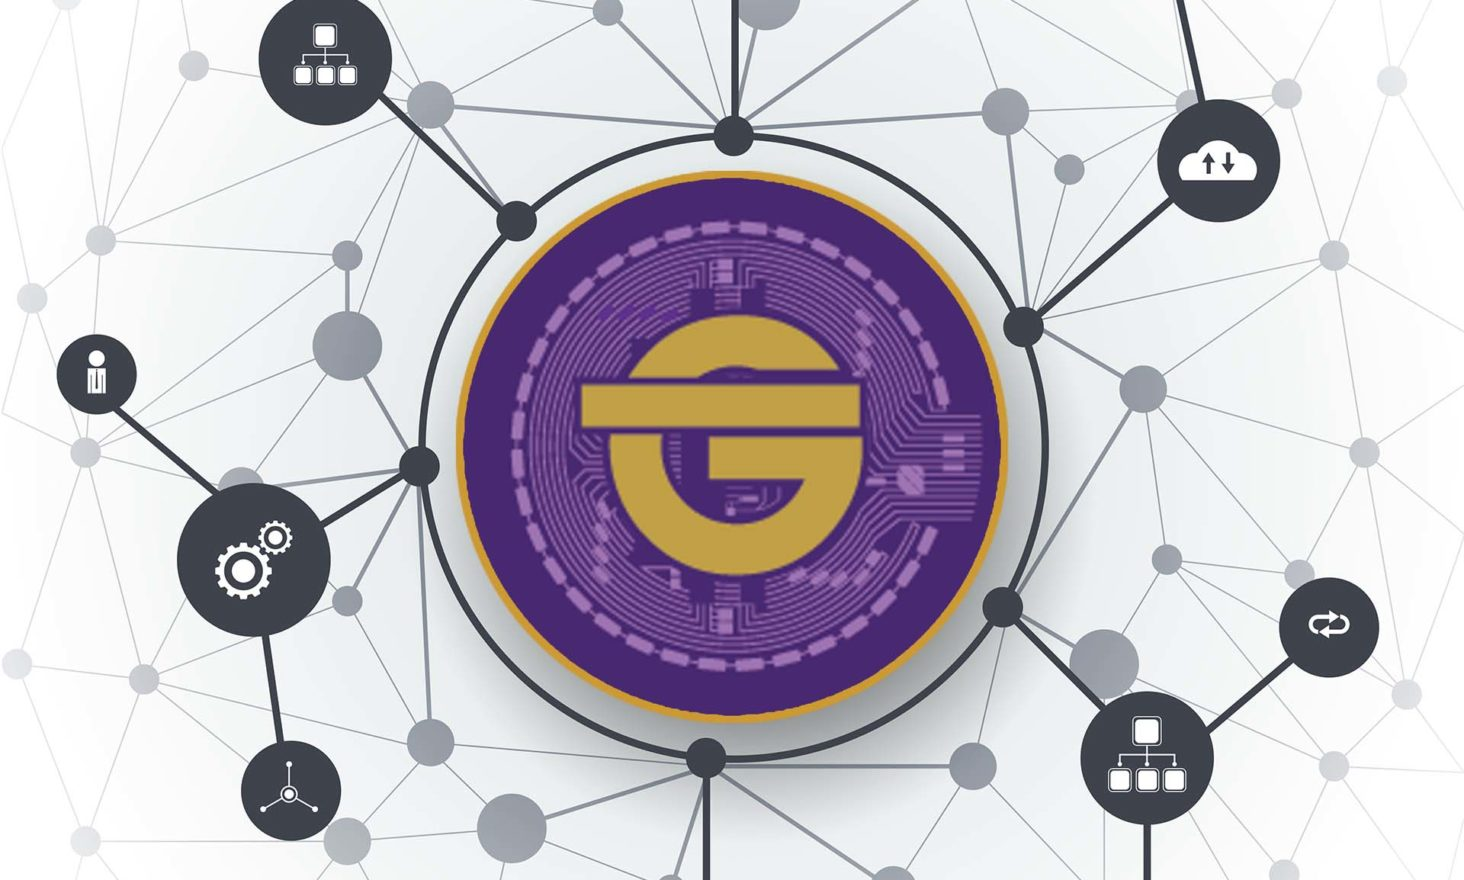 Crowd Genie Asset Exchange to Hold ICO